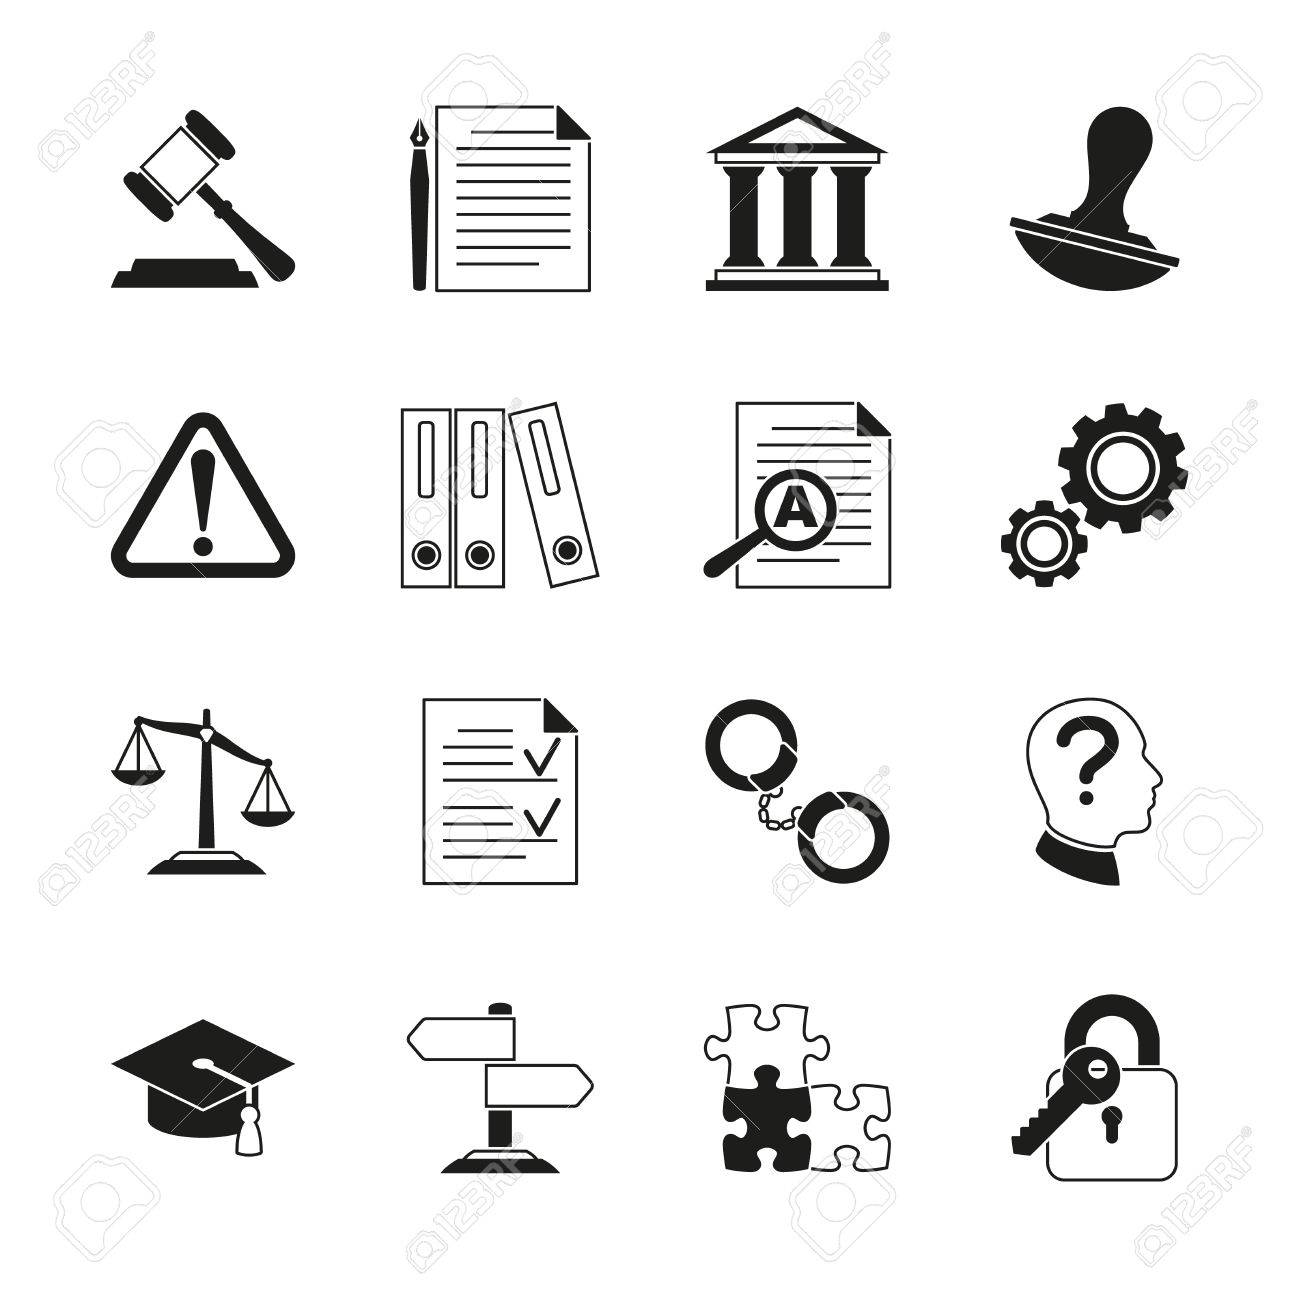 Law Consulting Legal Compliance Vector Icons Policy And Regulations Pictograms Illustration Stock